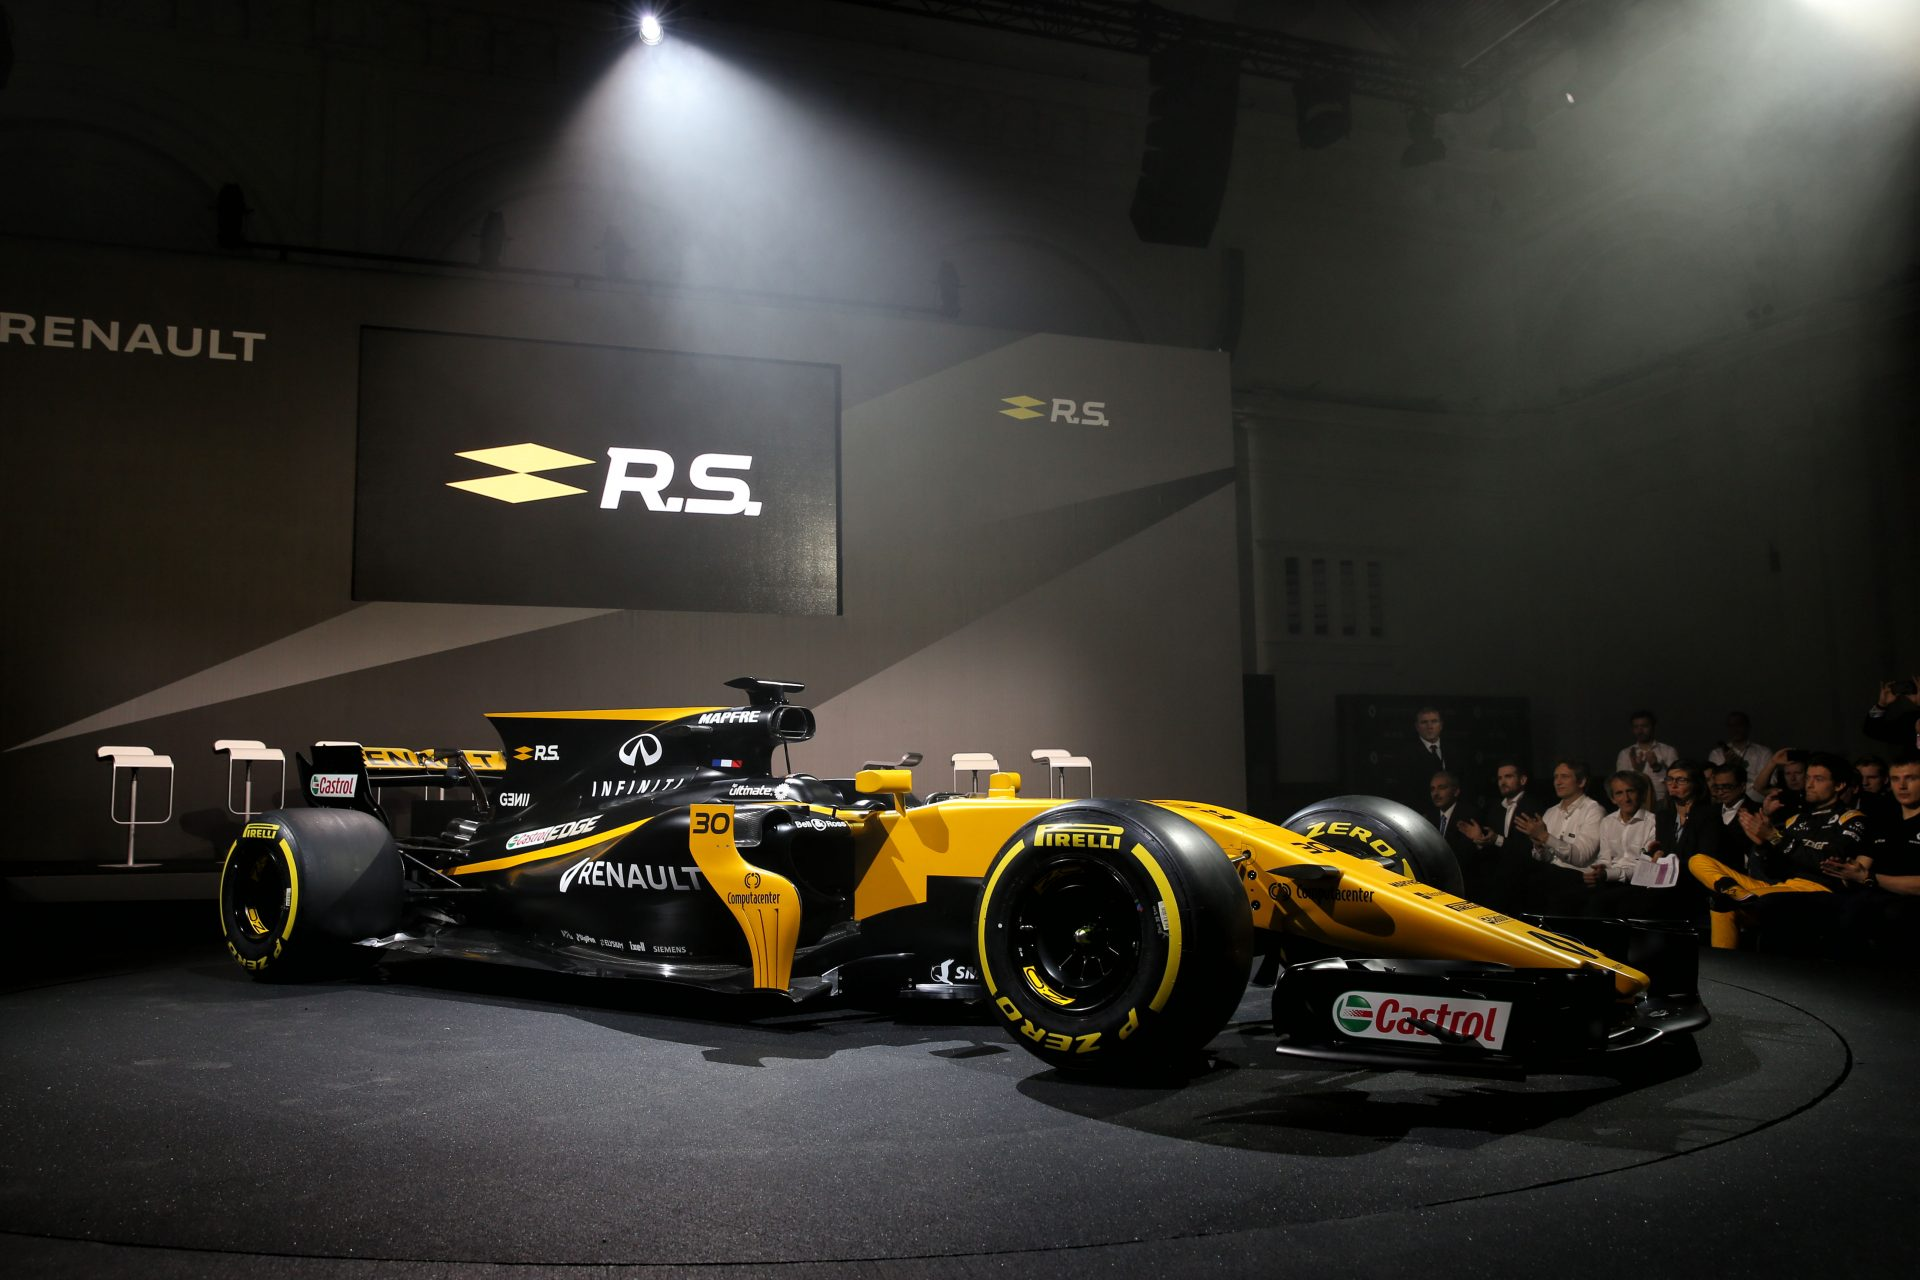 The Renault Sport F1 Team RS17 is unveiled. Renault Sport Formula One Team RS17 Launch, Royal Horticultural Society Headquarters, London, England. Tuesday 21st February 2017.